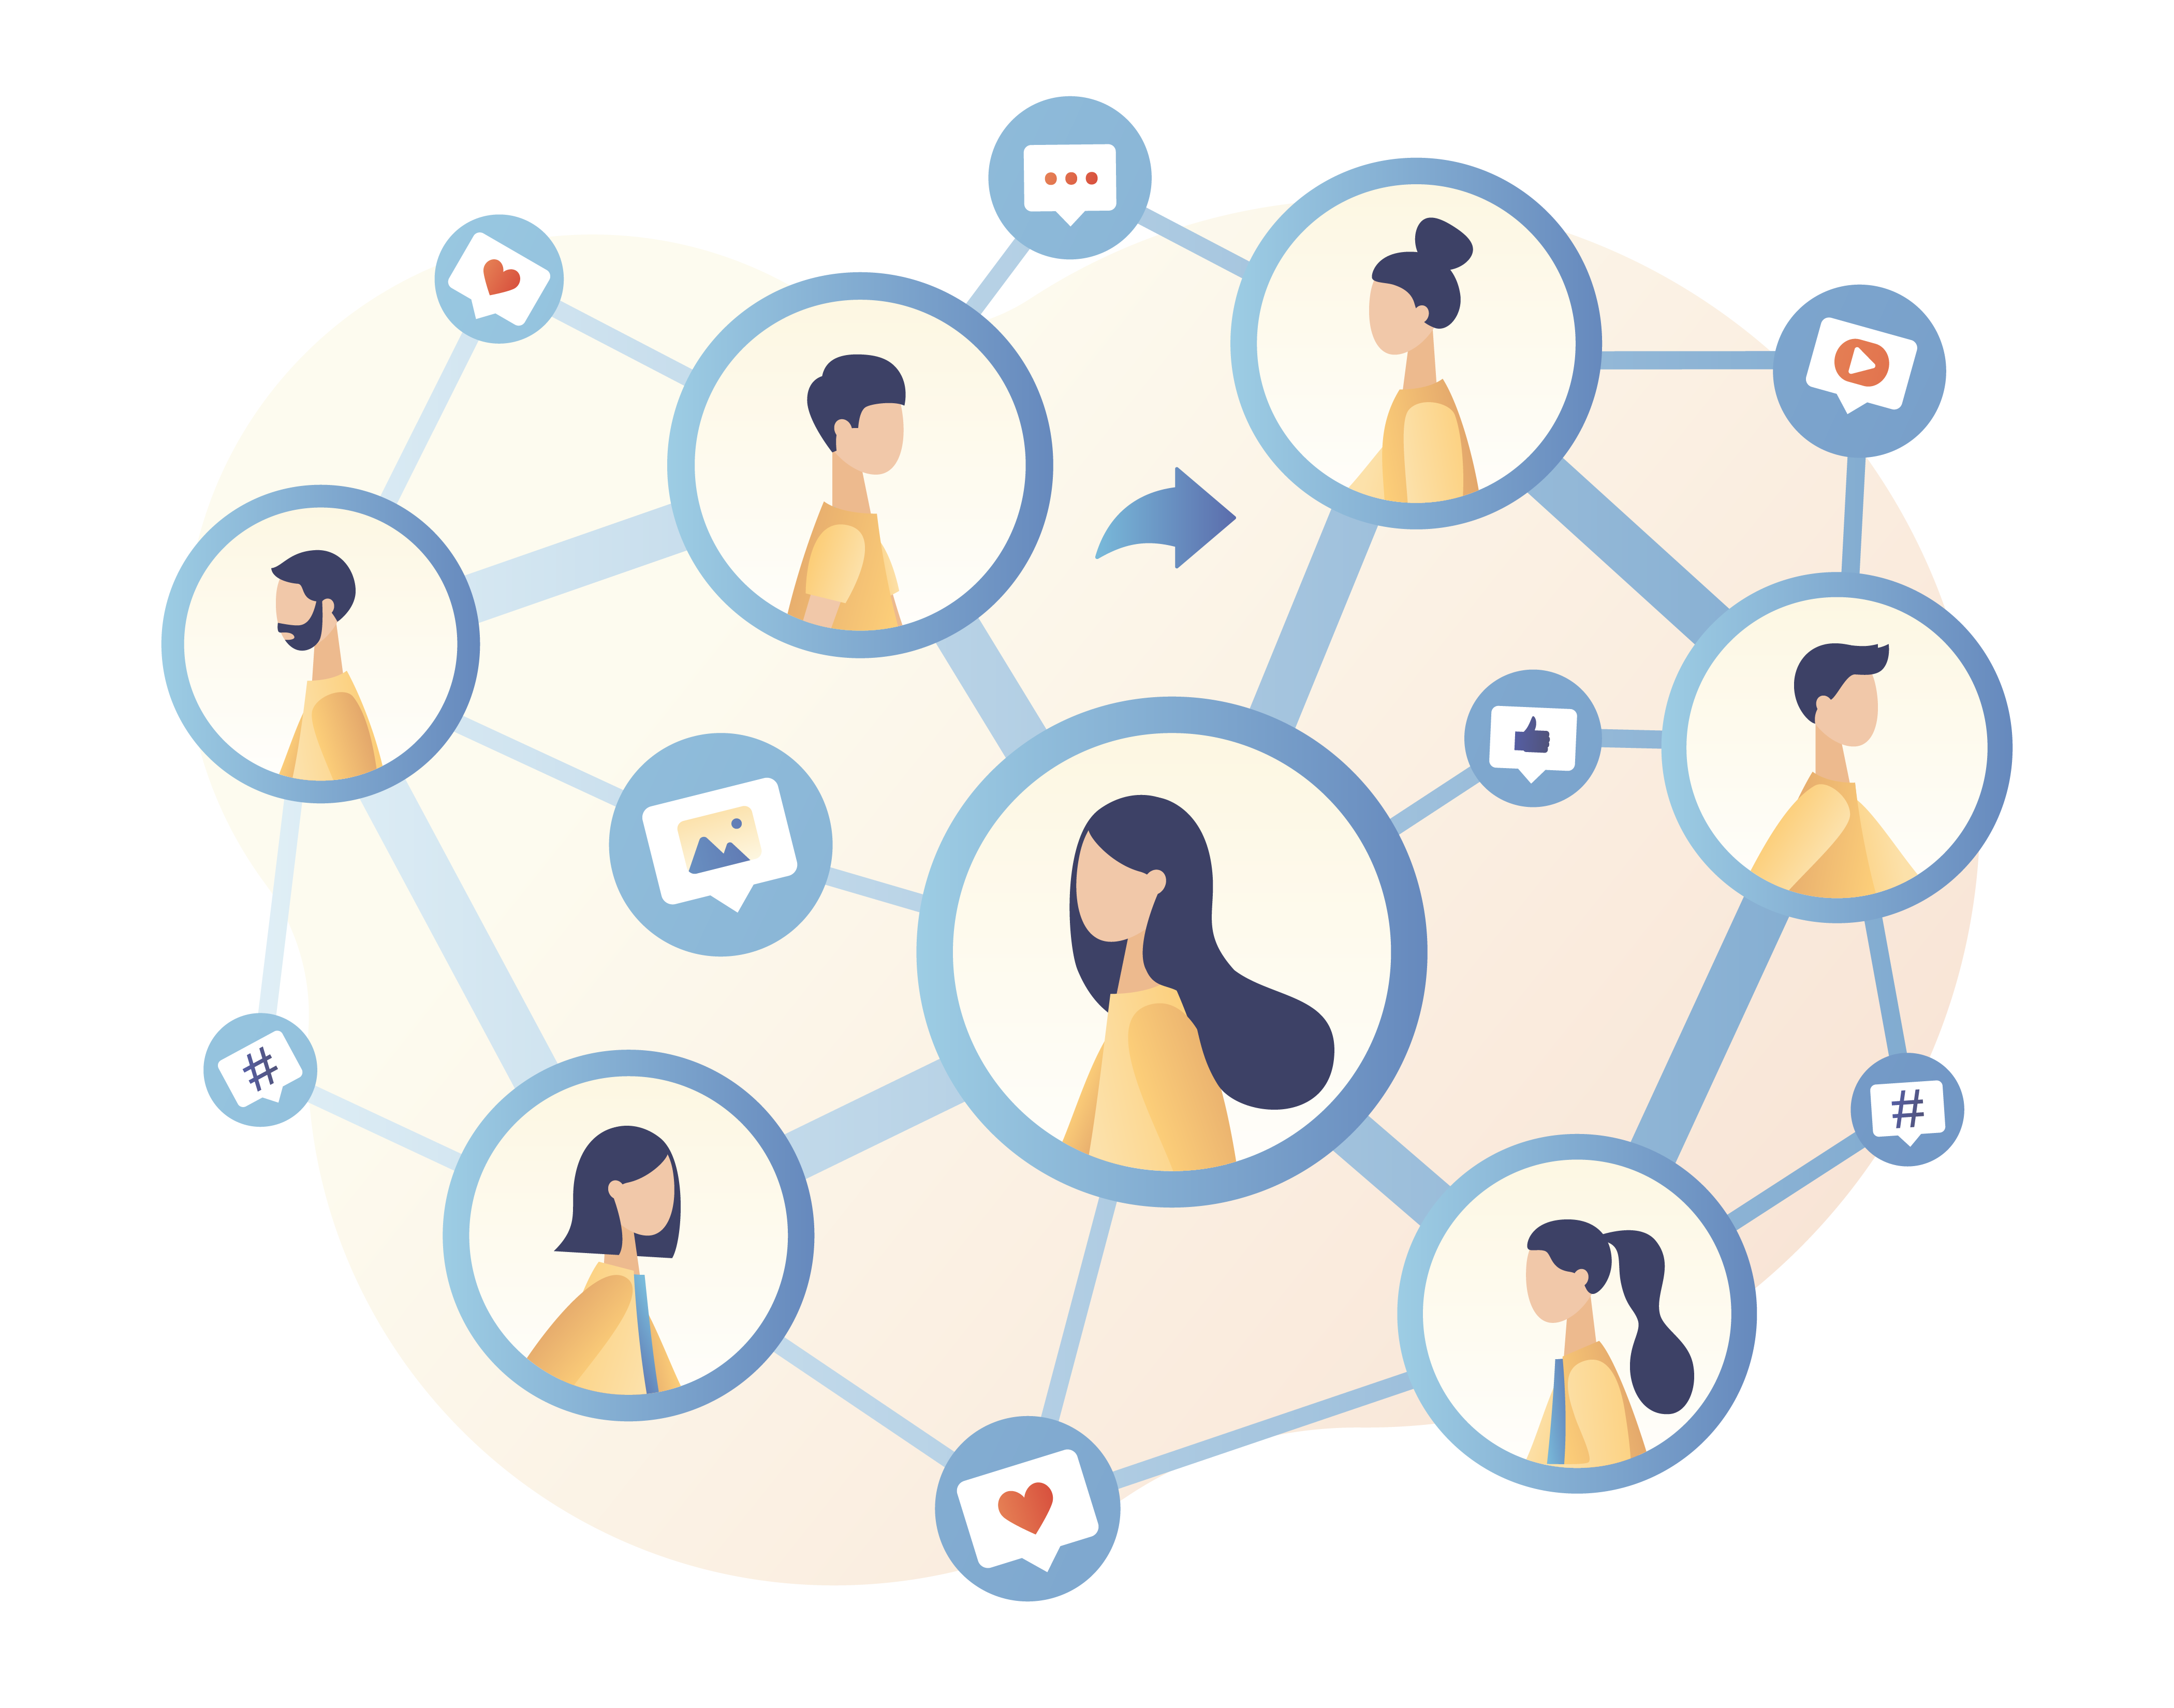 network of people connected together